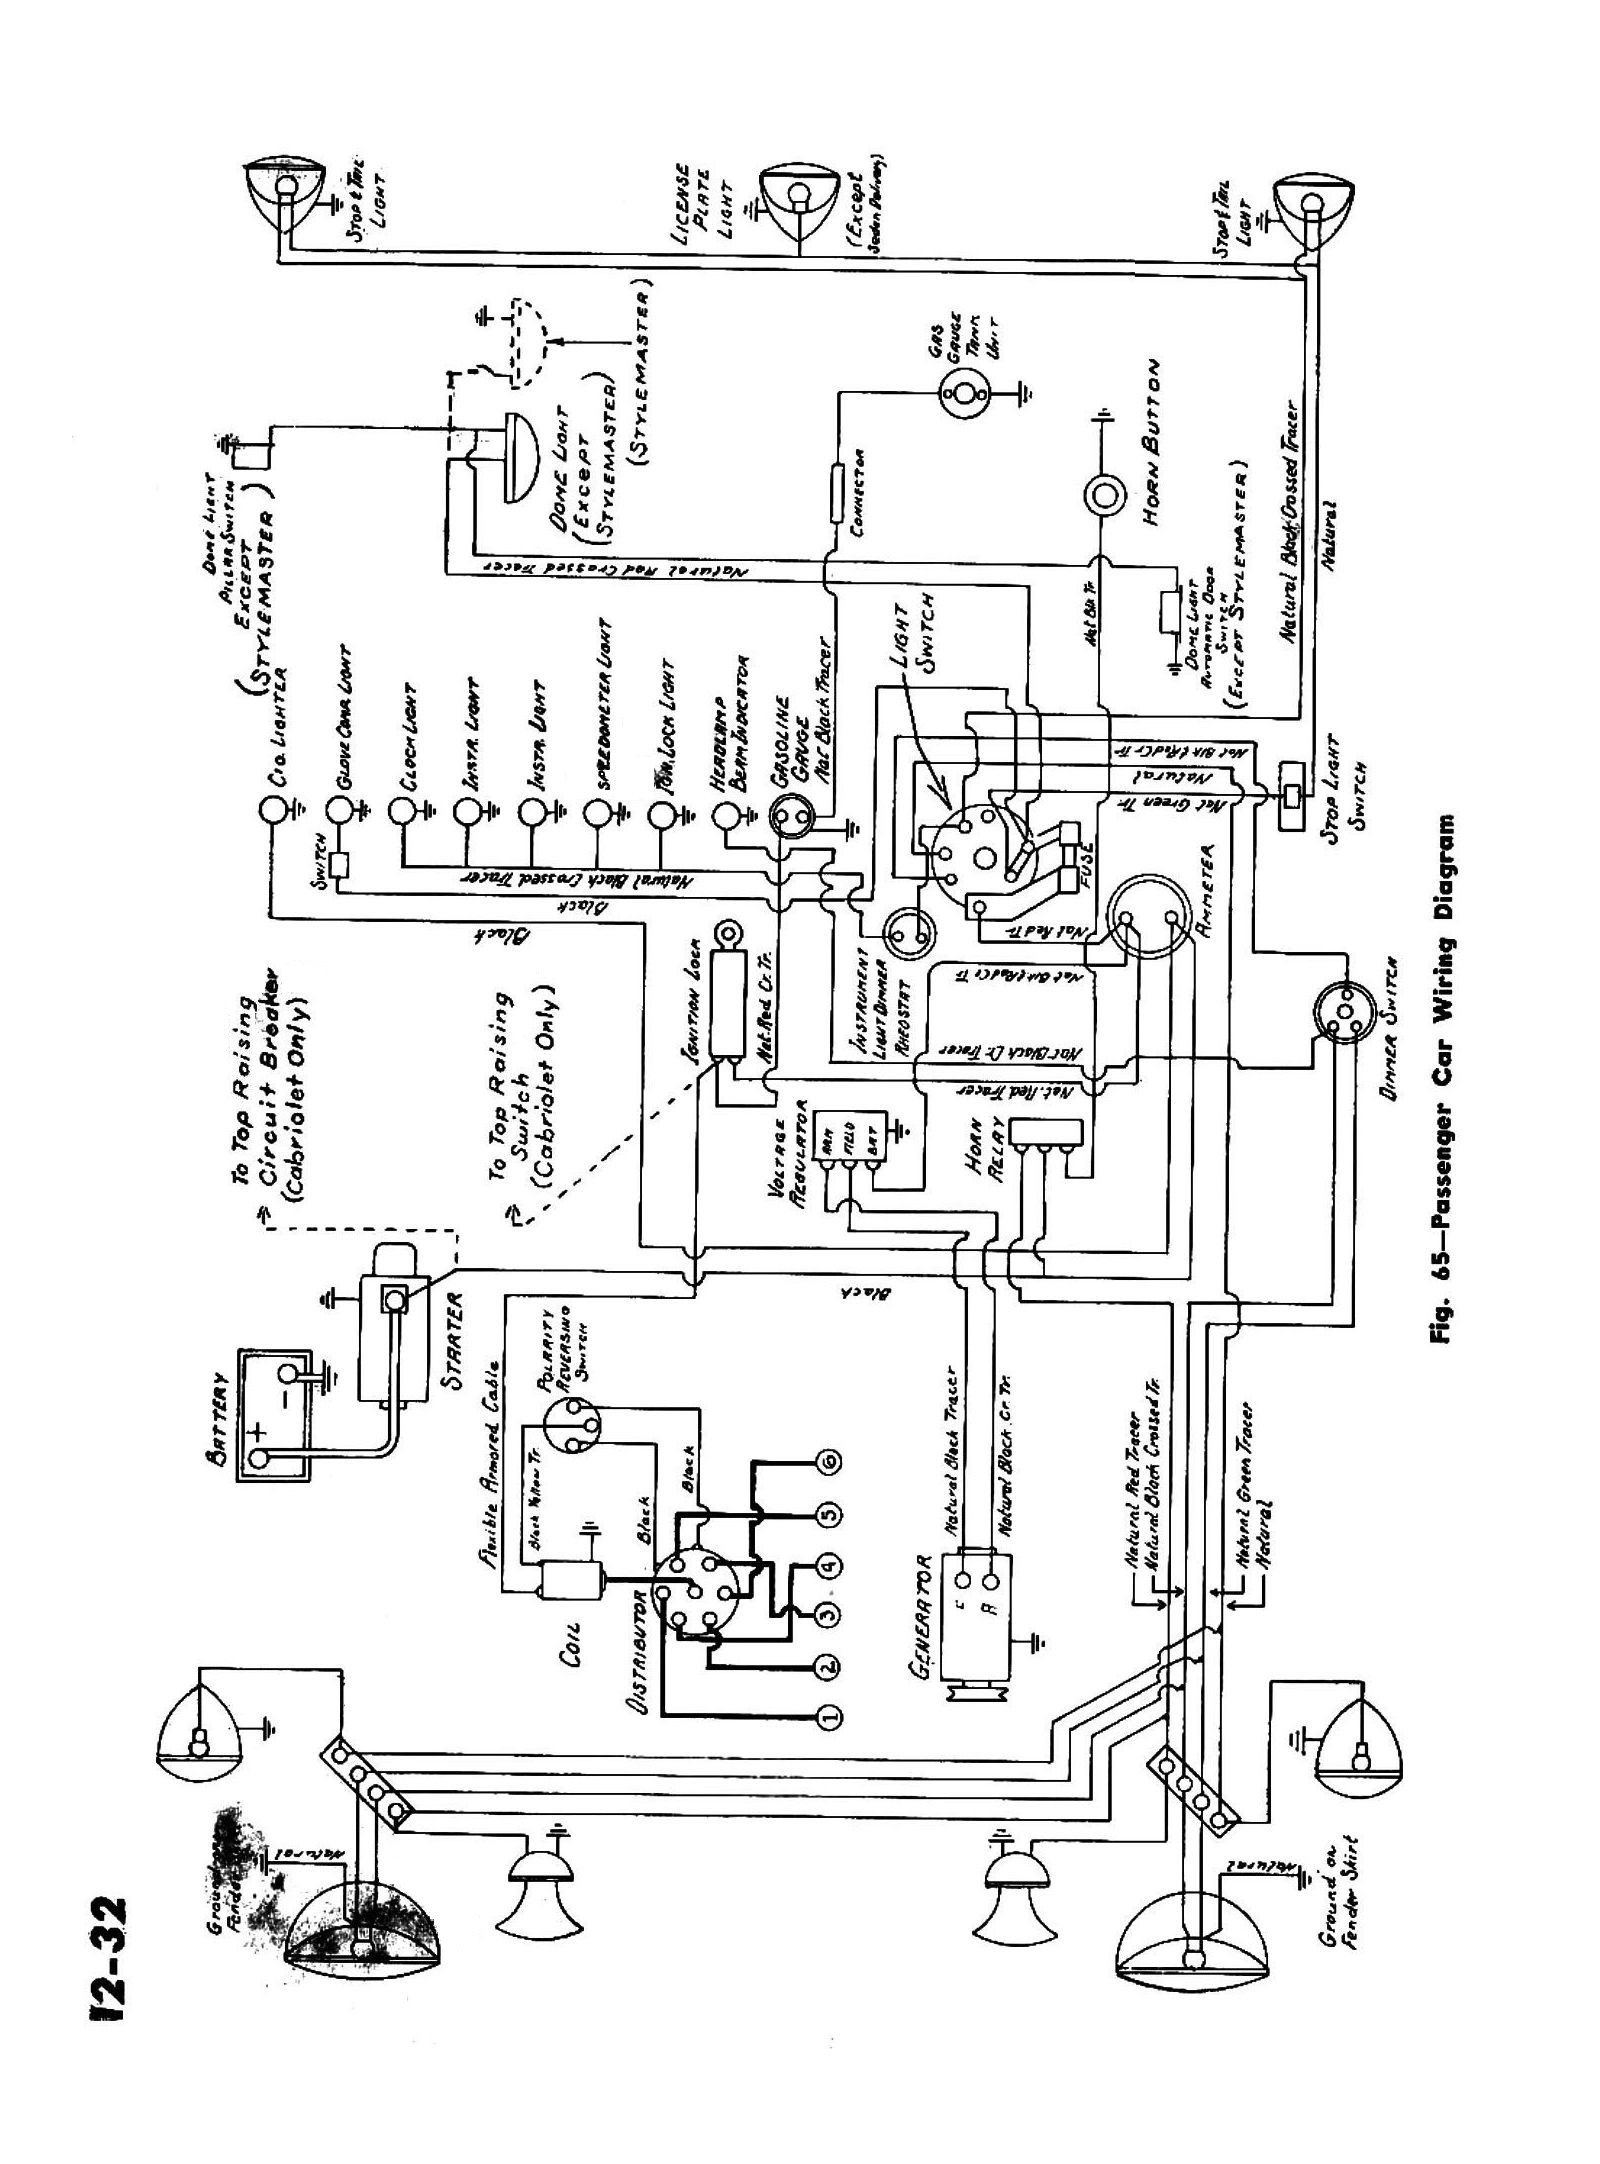 Fabulous 1954 Studebaker Wiring Diagrams Free Image Wiring Diagram Engine Wiring Digital Resources Funapmognl